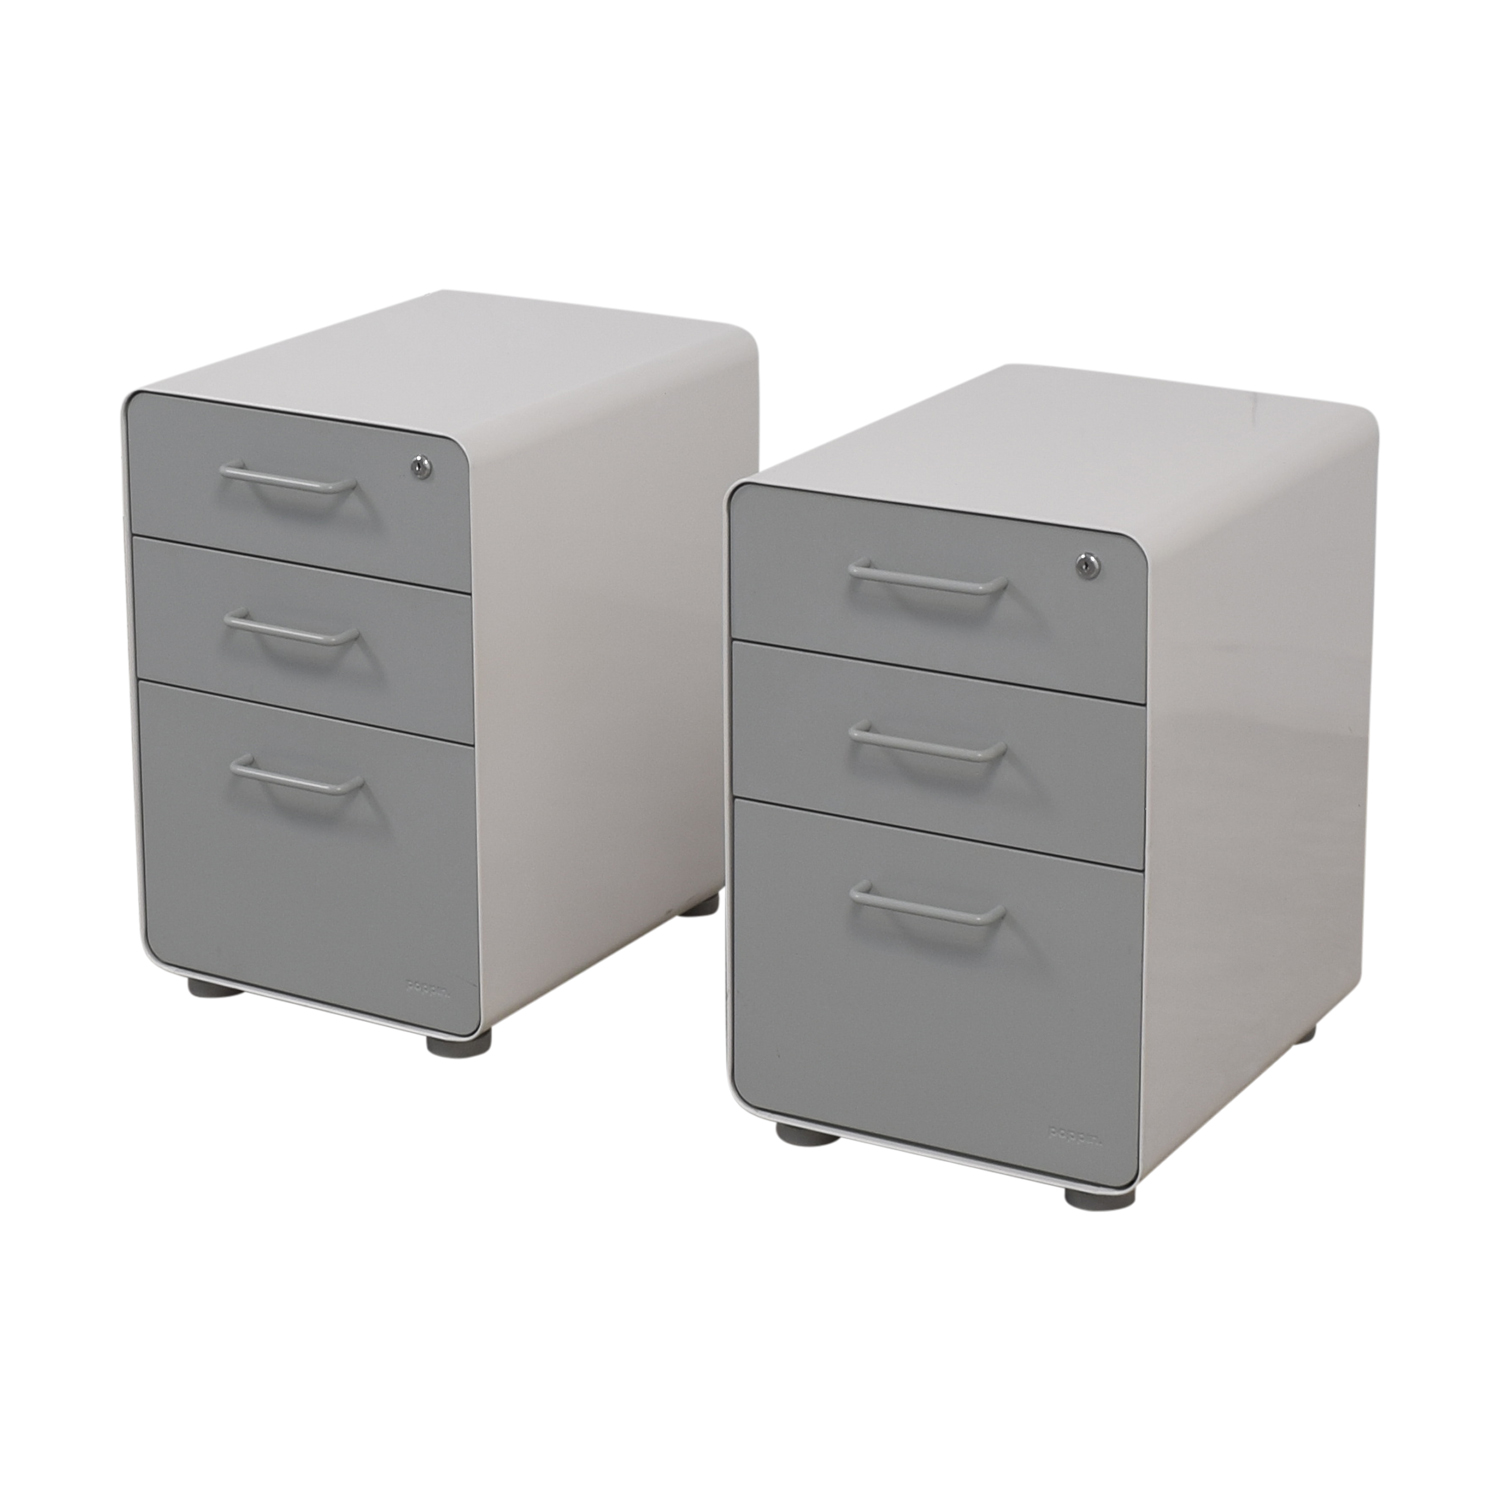 buy Poppin White and Grey Rolling Three-Drawer File Cabinets Poppin